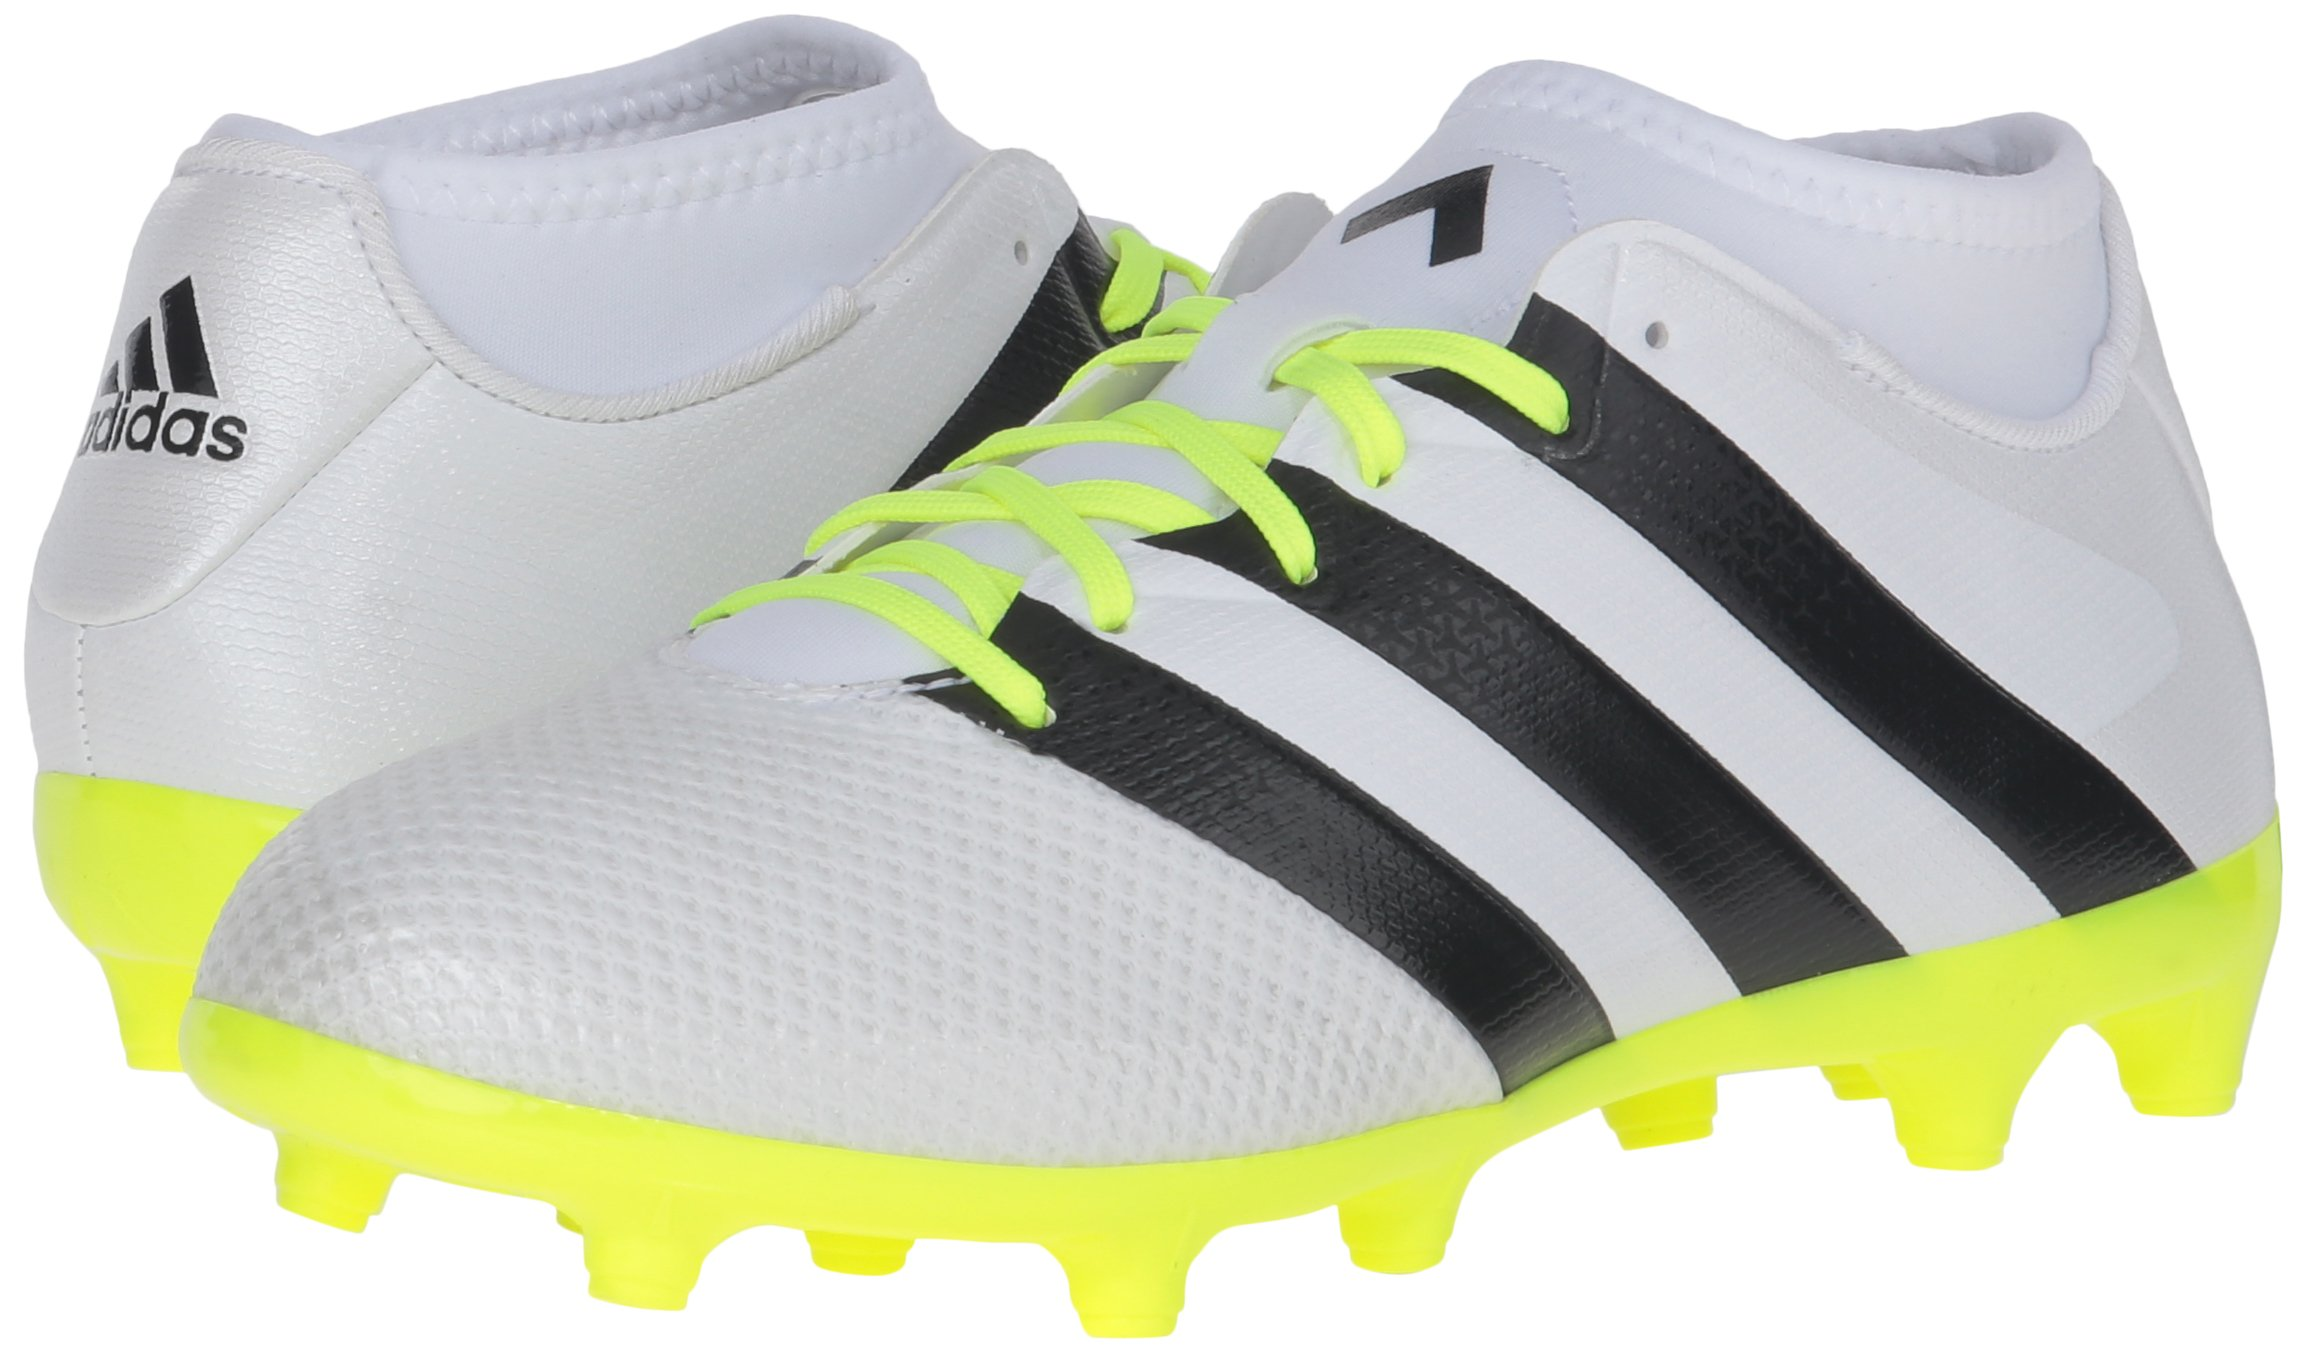 adidas Women's Ace 16.3 Primemesh FG/AG W Soccer Shoe, White/Black/Electricity, 9 M US by adidas (Image #6)